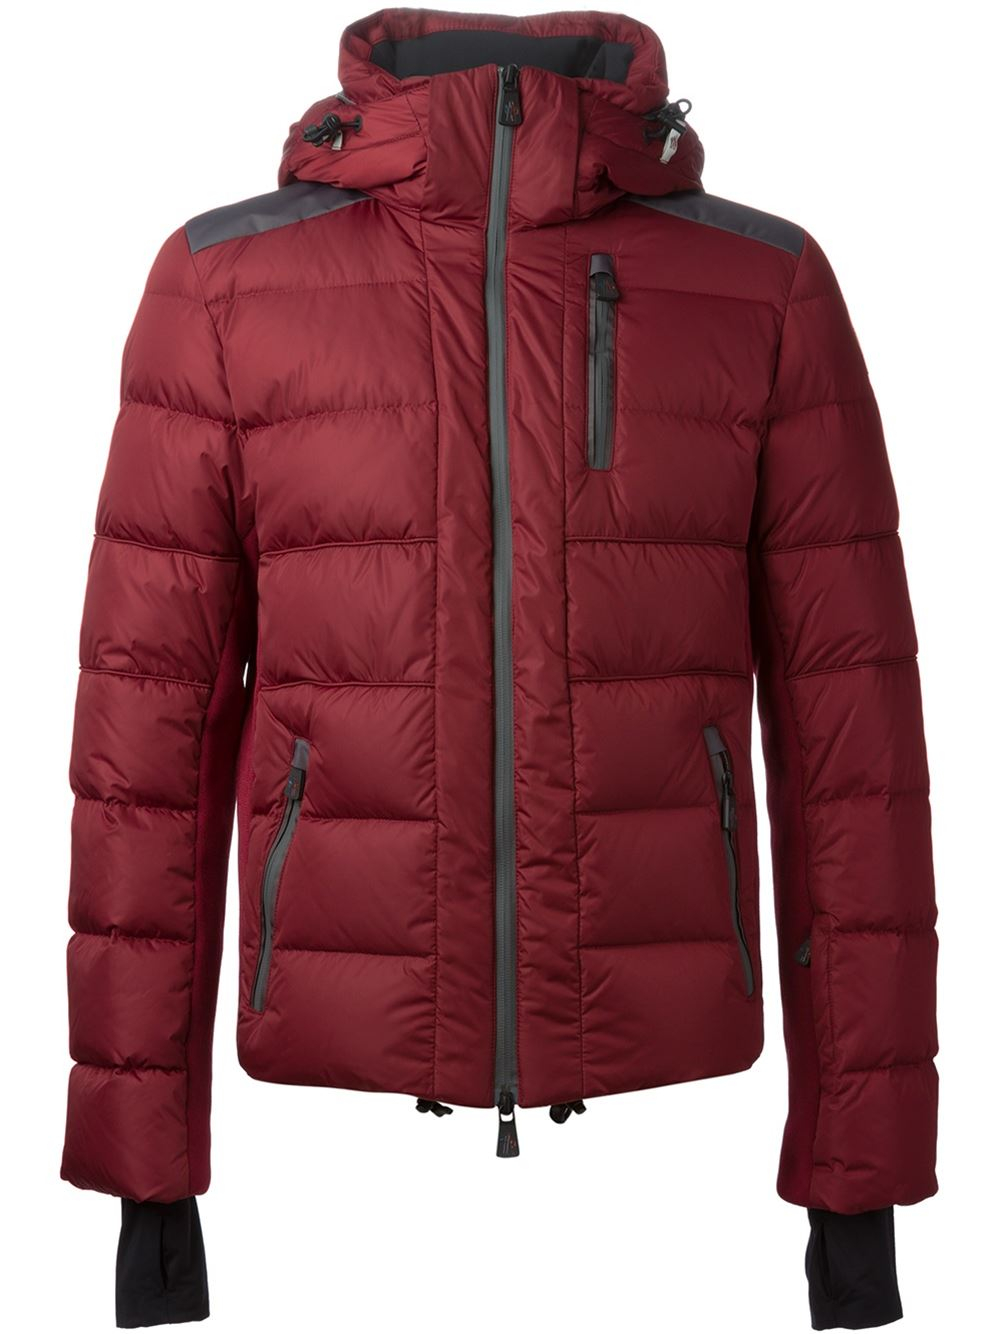 Lyst Moncler Grenoble Classic Padded Ski Jacket In Red